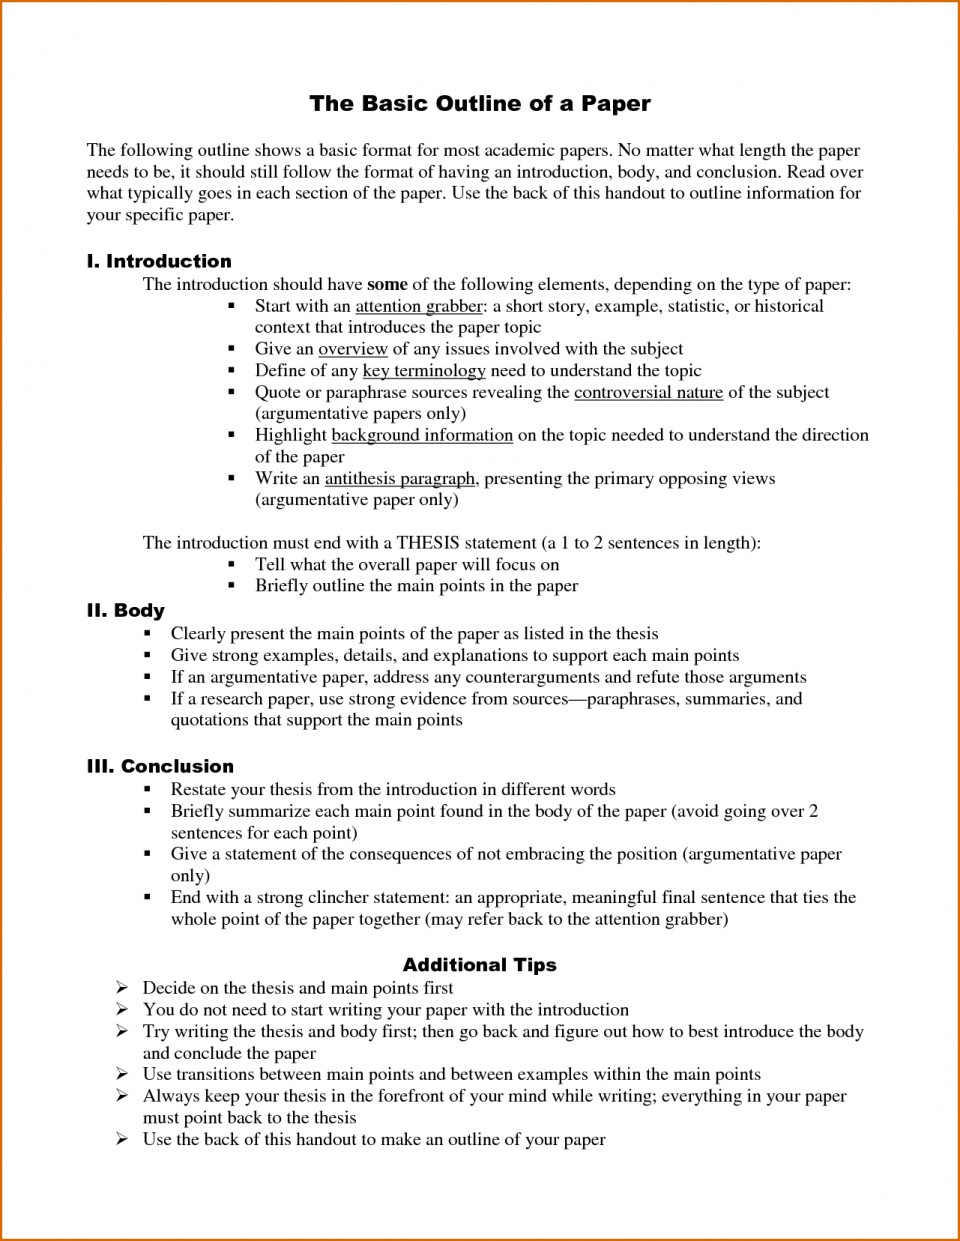 014 Research Paper Outline Template Word How To Do An For Stupendous A Example Write Sample 960